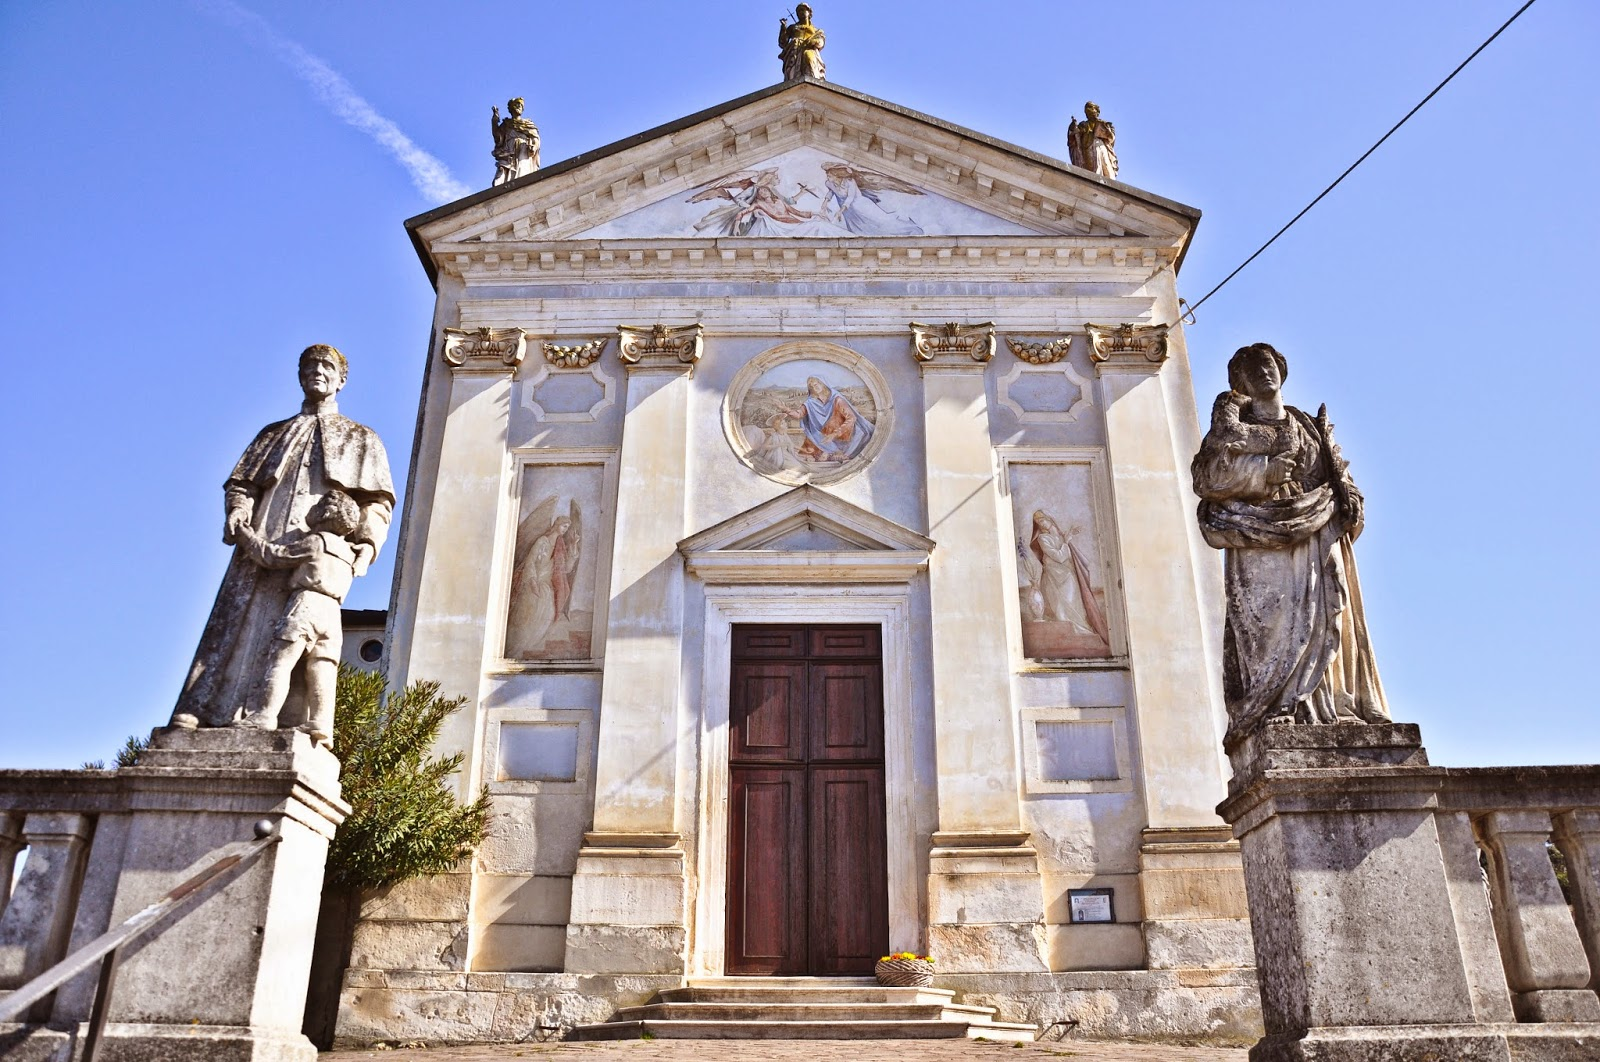 The church in Arcugnano, Colli Berici